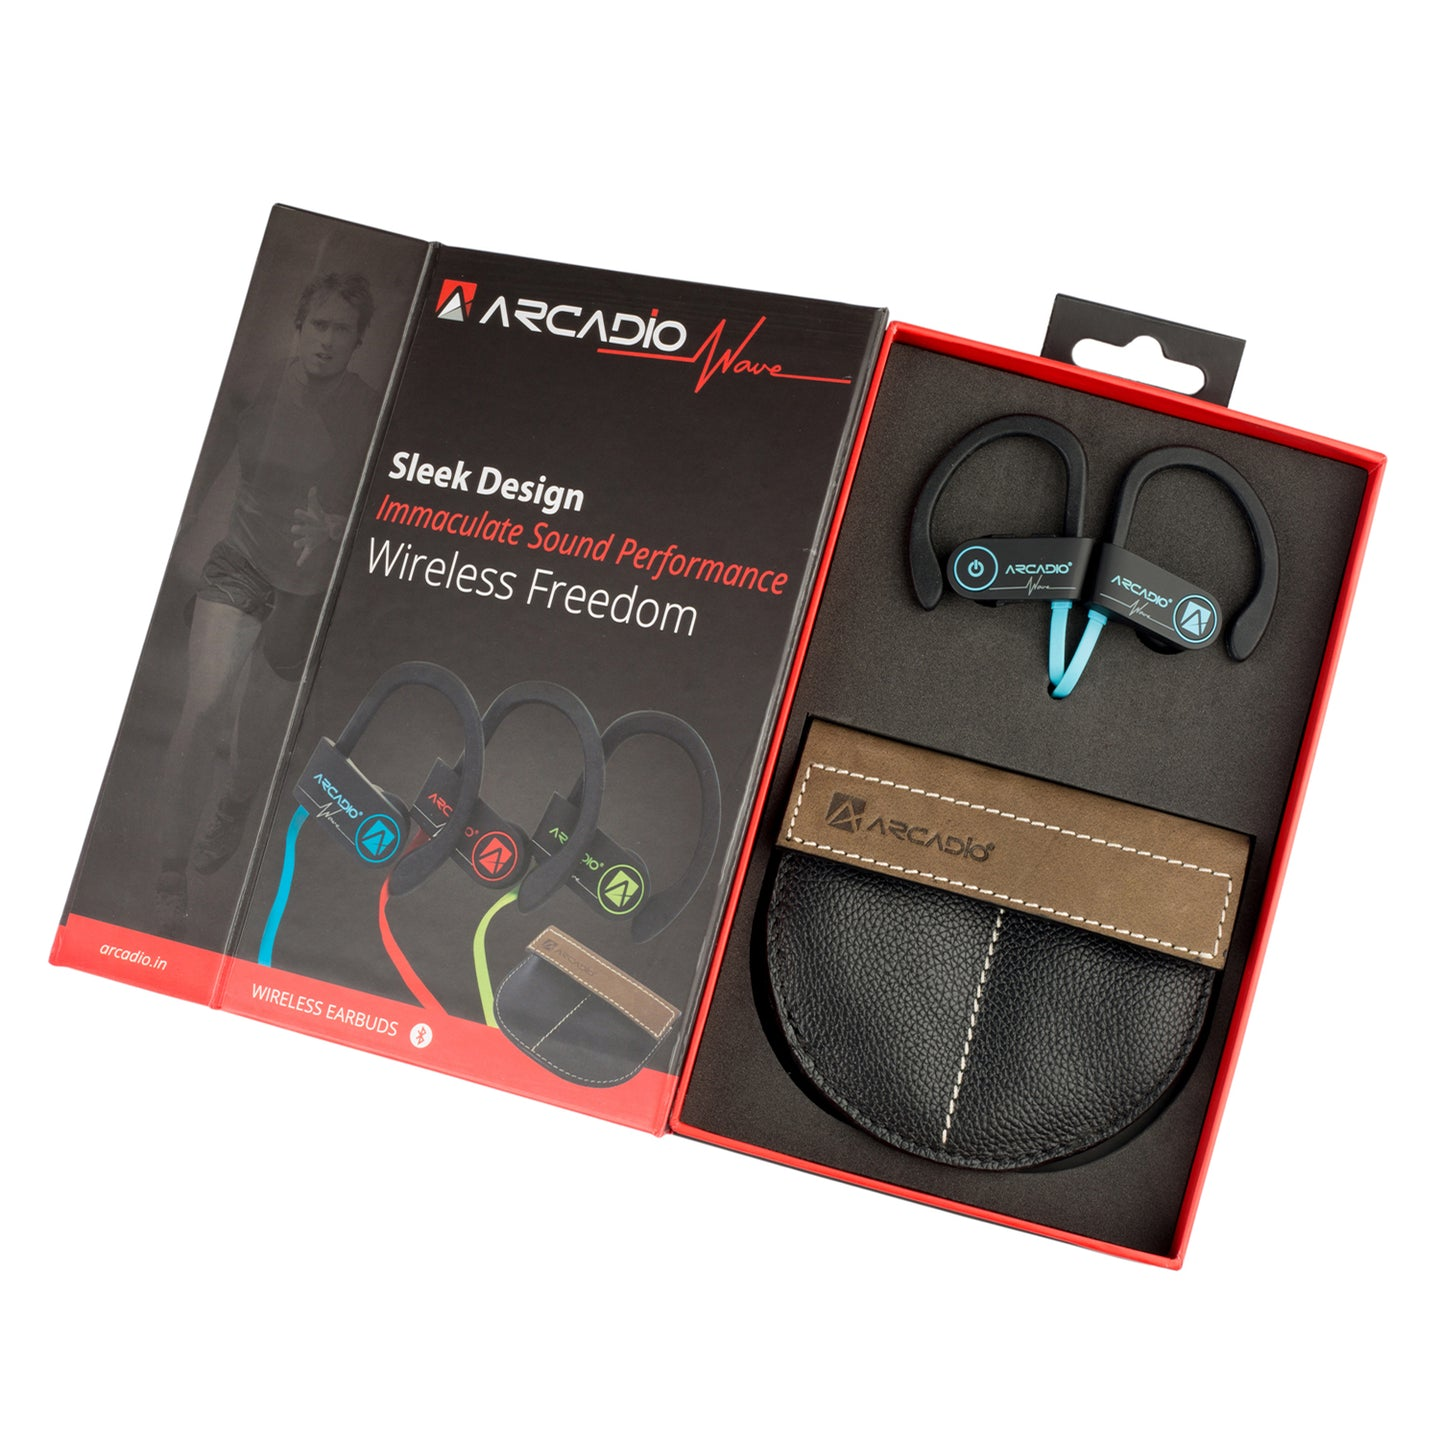 ARCADIO WAVE - Wireless Ear Plug with Mic - Blue